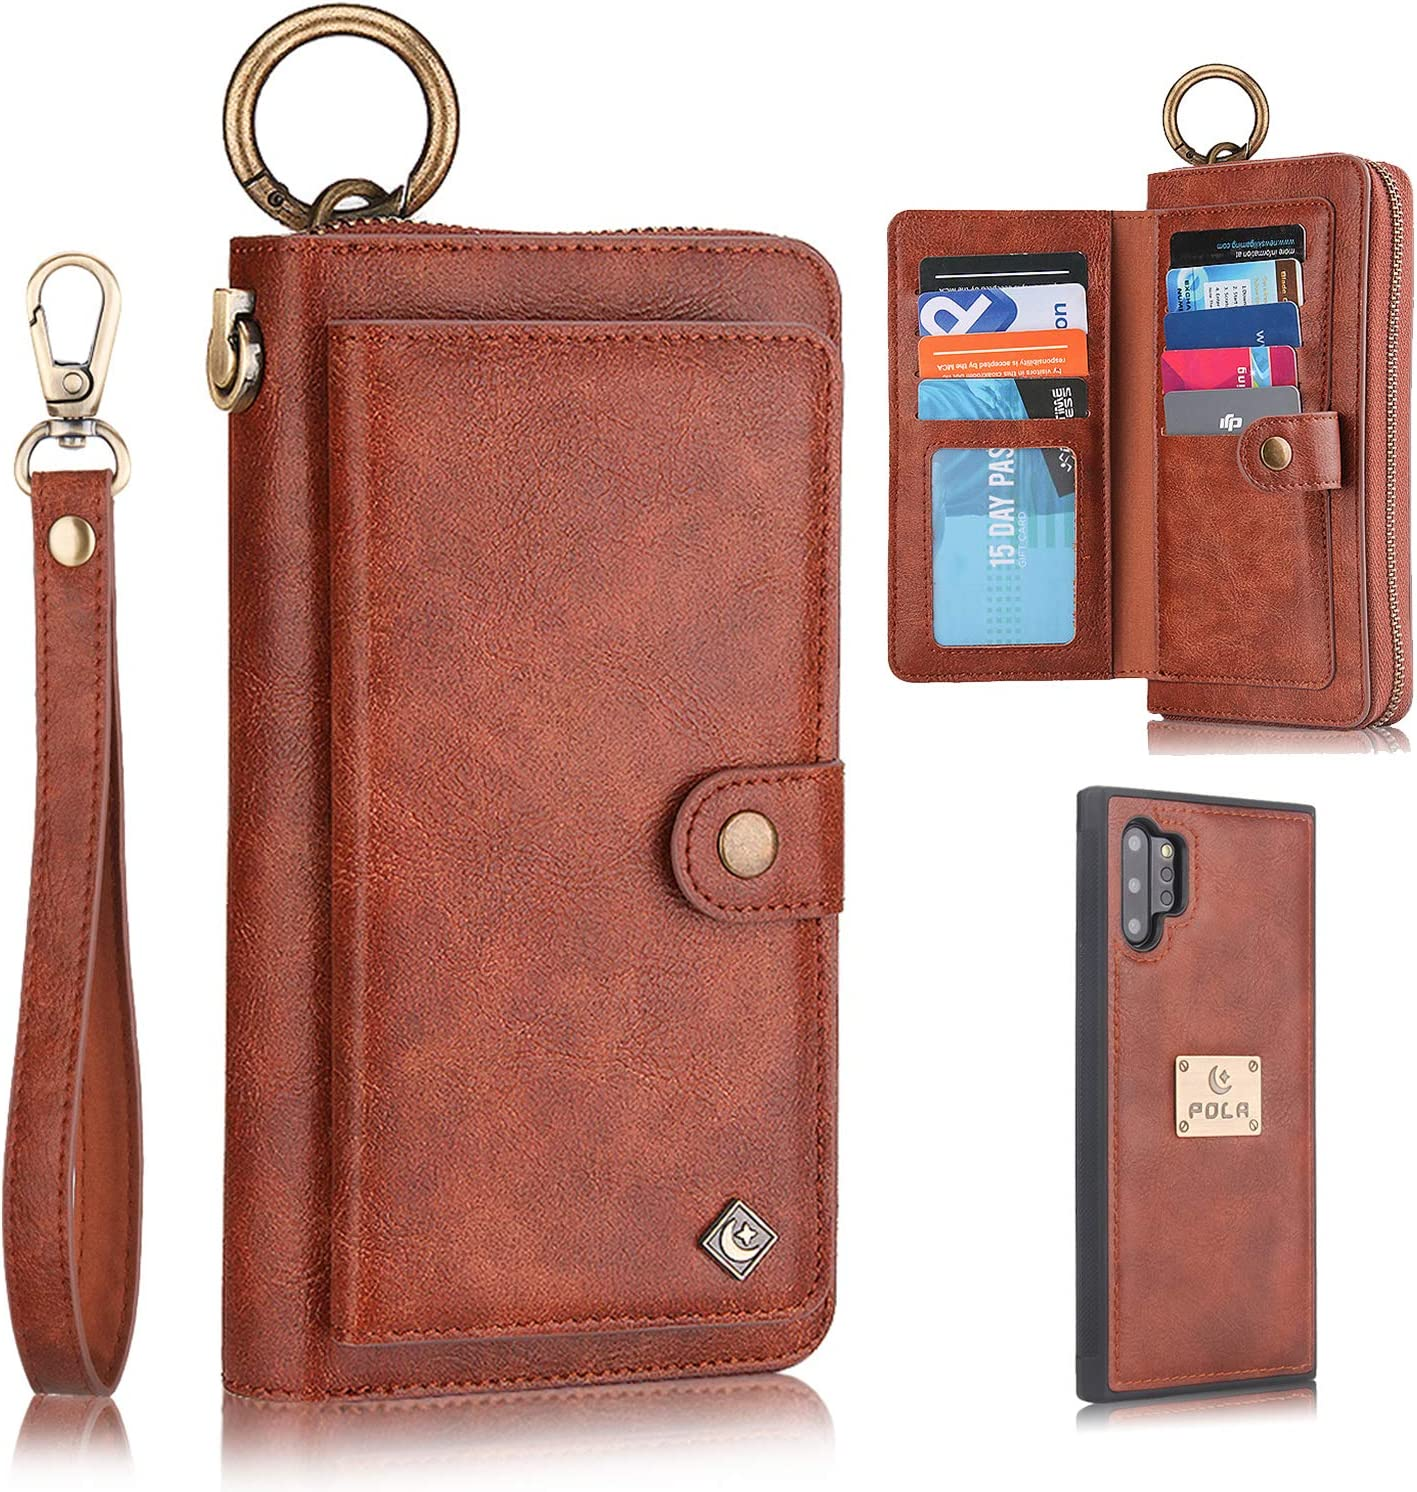 Galaxy Note 10 Plus Case, Note 10+ Plus 5G Case Wallet, XRPow [2 in 1] [Magnetic Detachable] Zipper Wallet Folio Case [Wrist Strap] Slim Leather Shock Back Cover with Credit Card Holder Purse - Brown